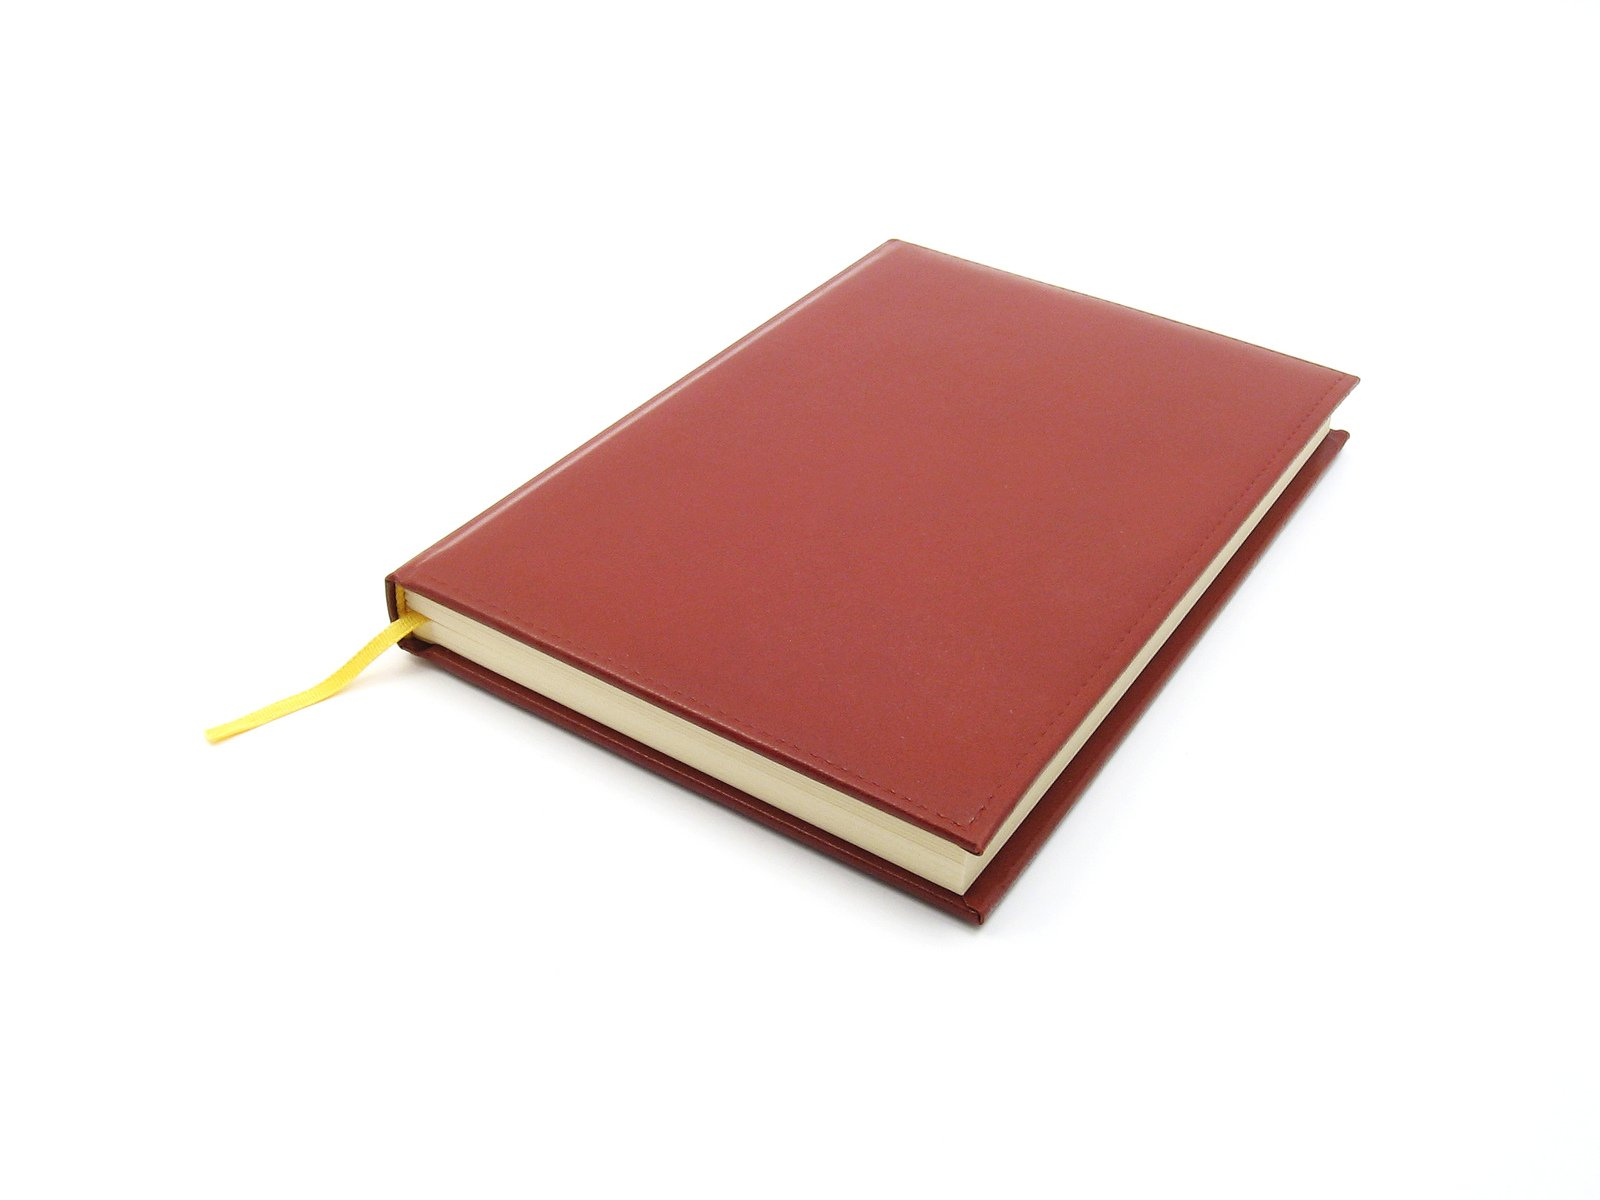 Book Image w Leather Cover.jpg